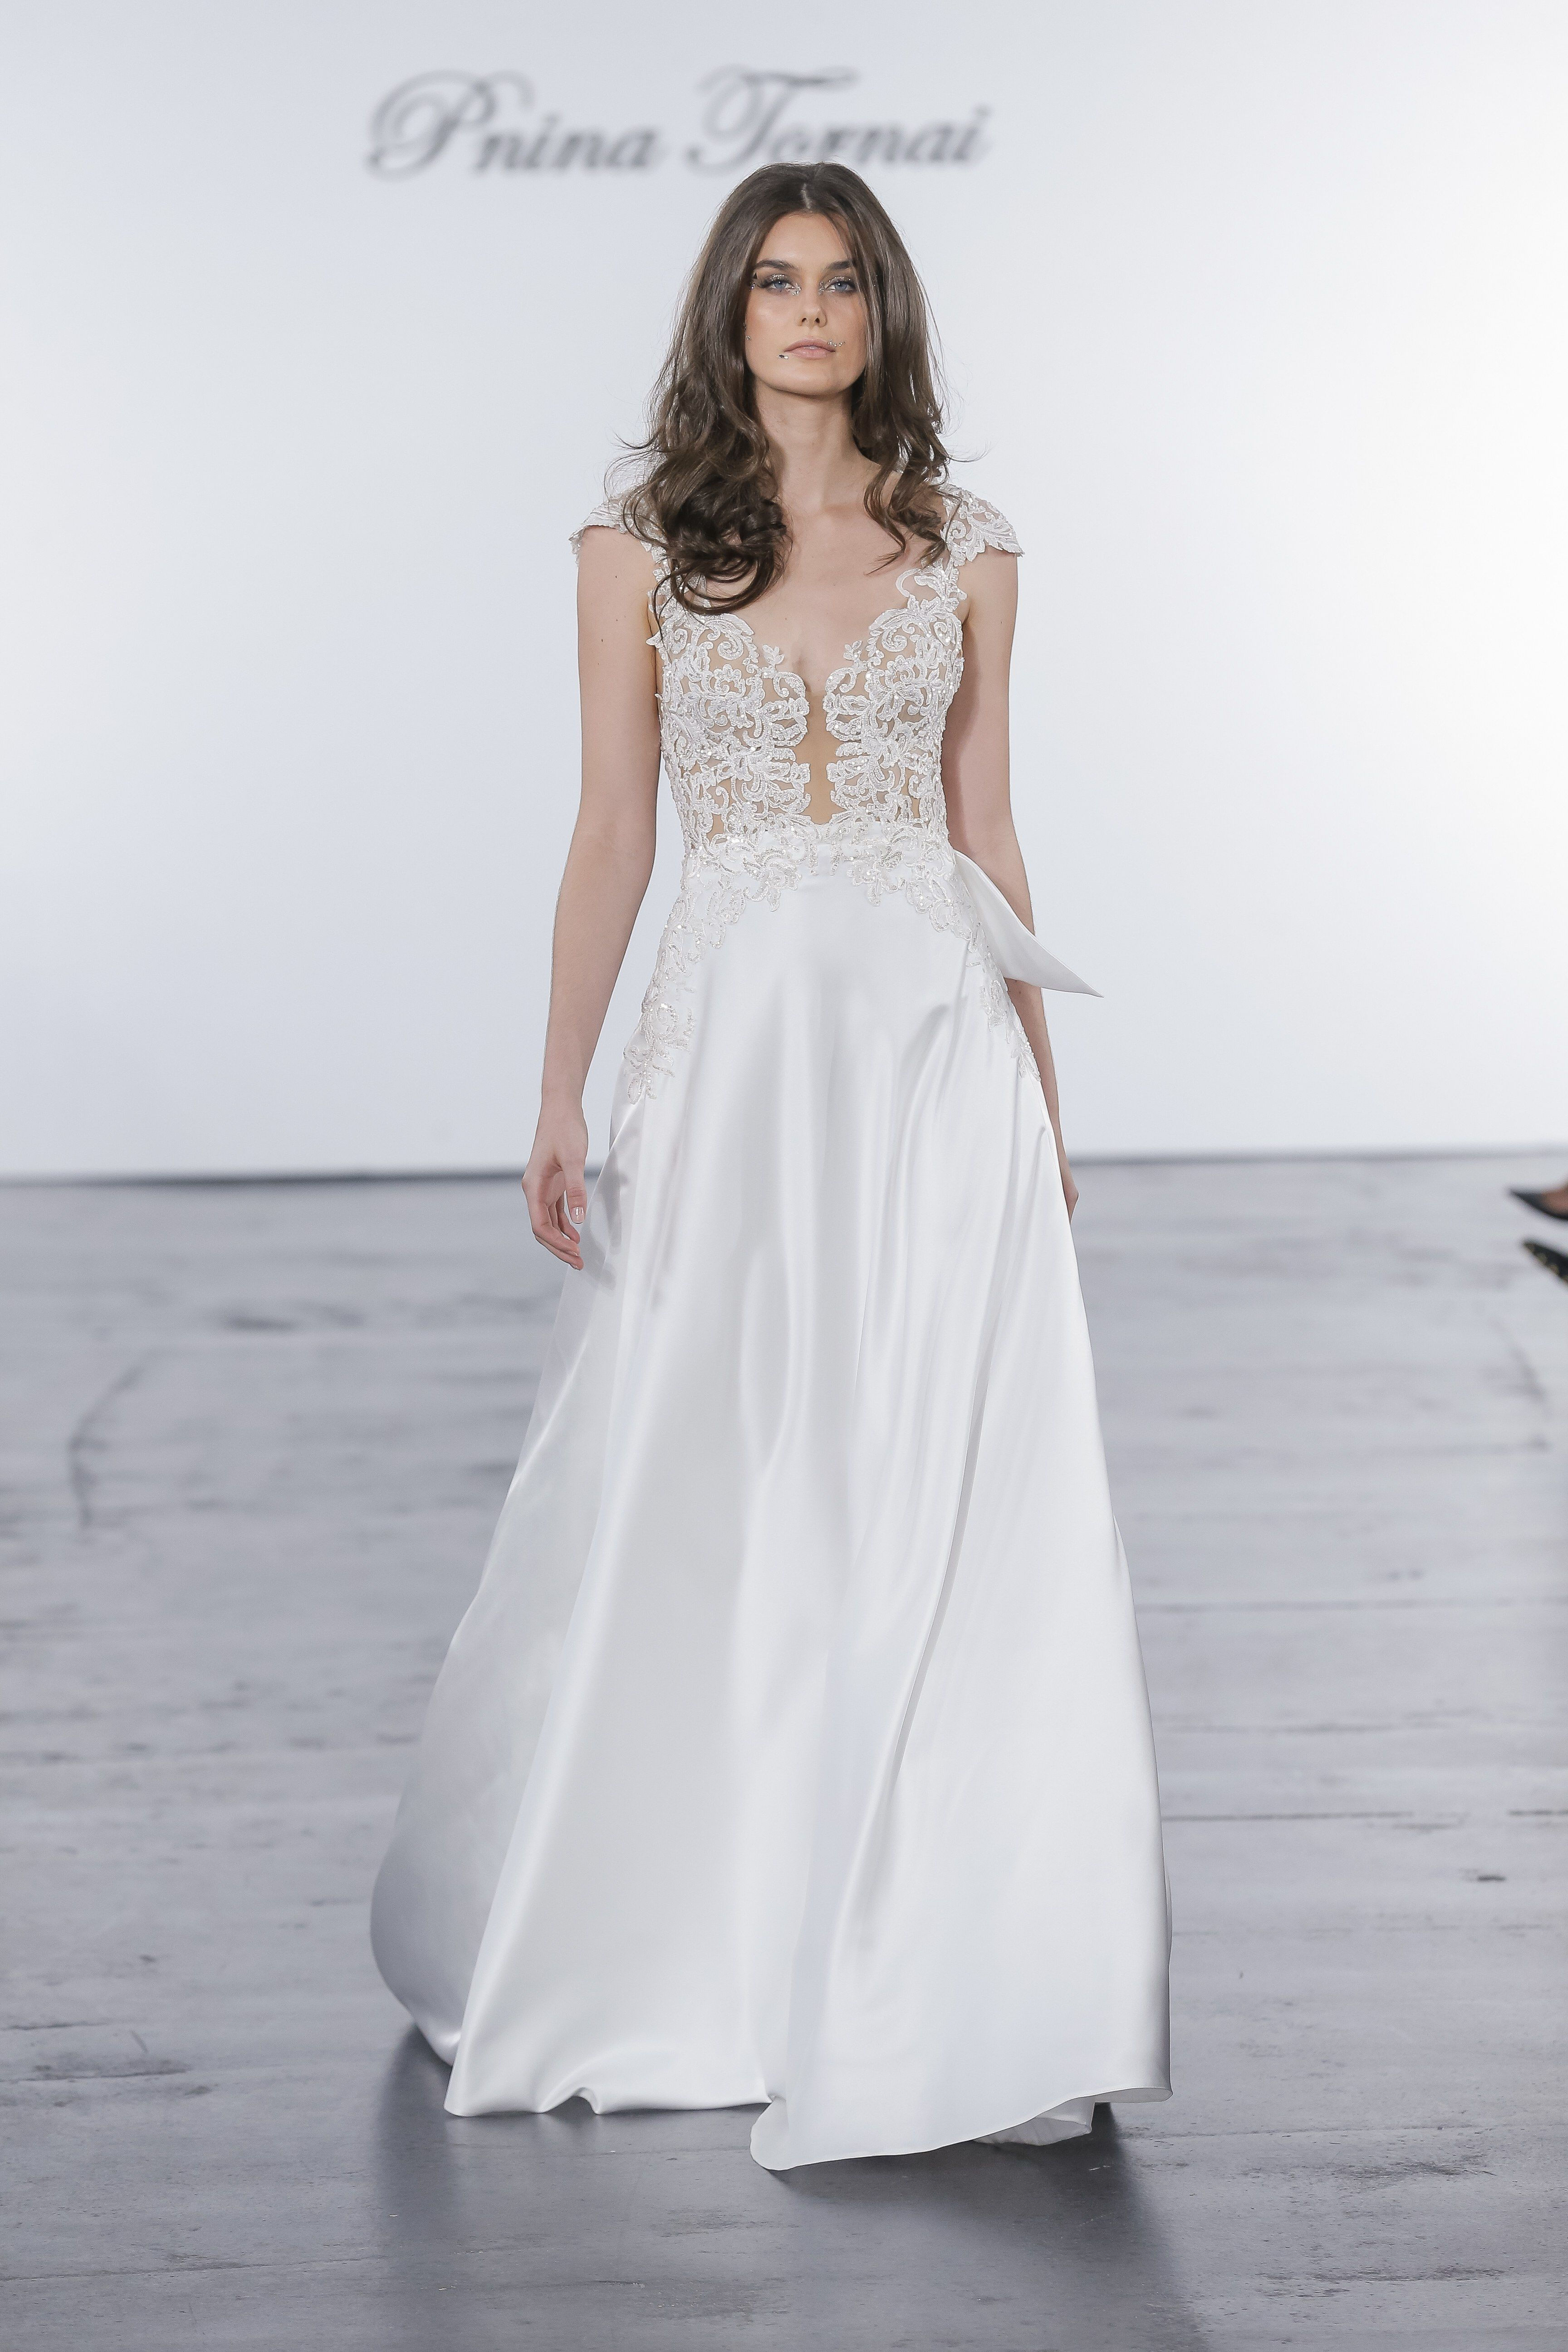 Pnina Tornai For Kleinfeld Bridal Wedding Dress Collection Fall 2018 Brides Different Top Skirt Needs Lace Pattern: Kleinfeld Wedding Dresses Pnina Tornais Area At Reisefeber.org